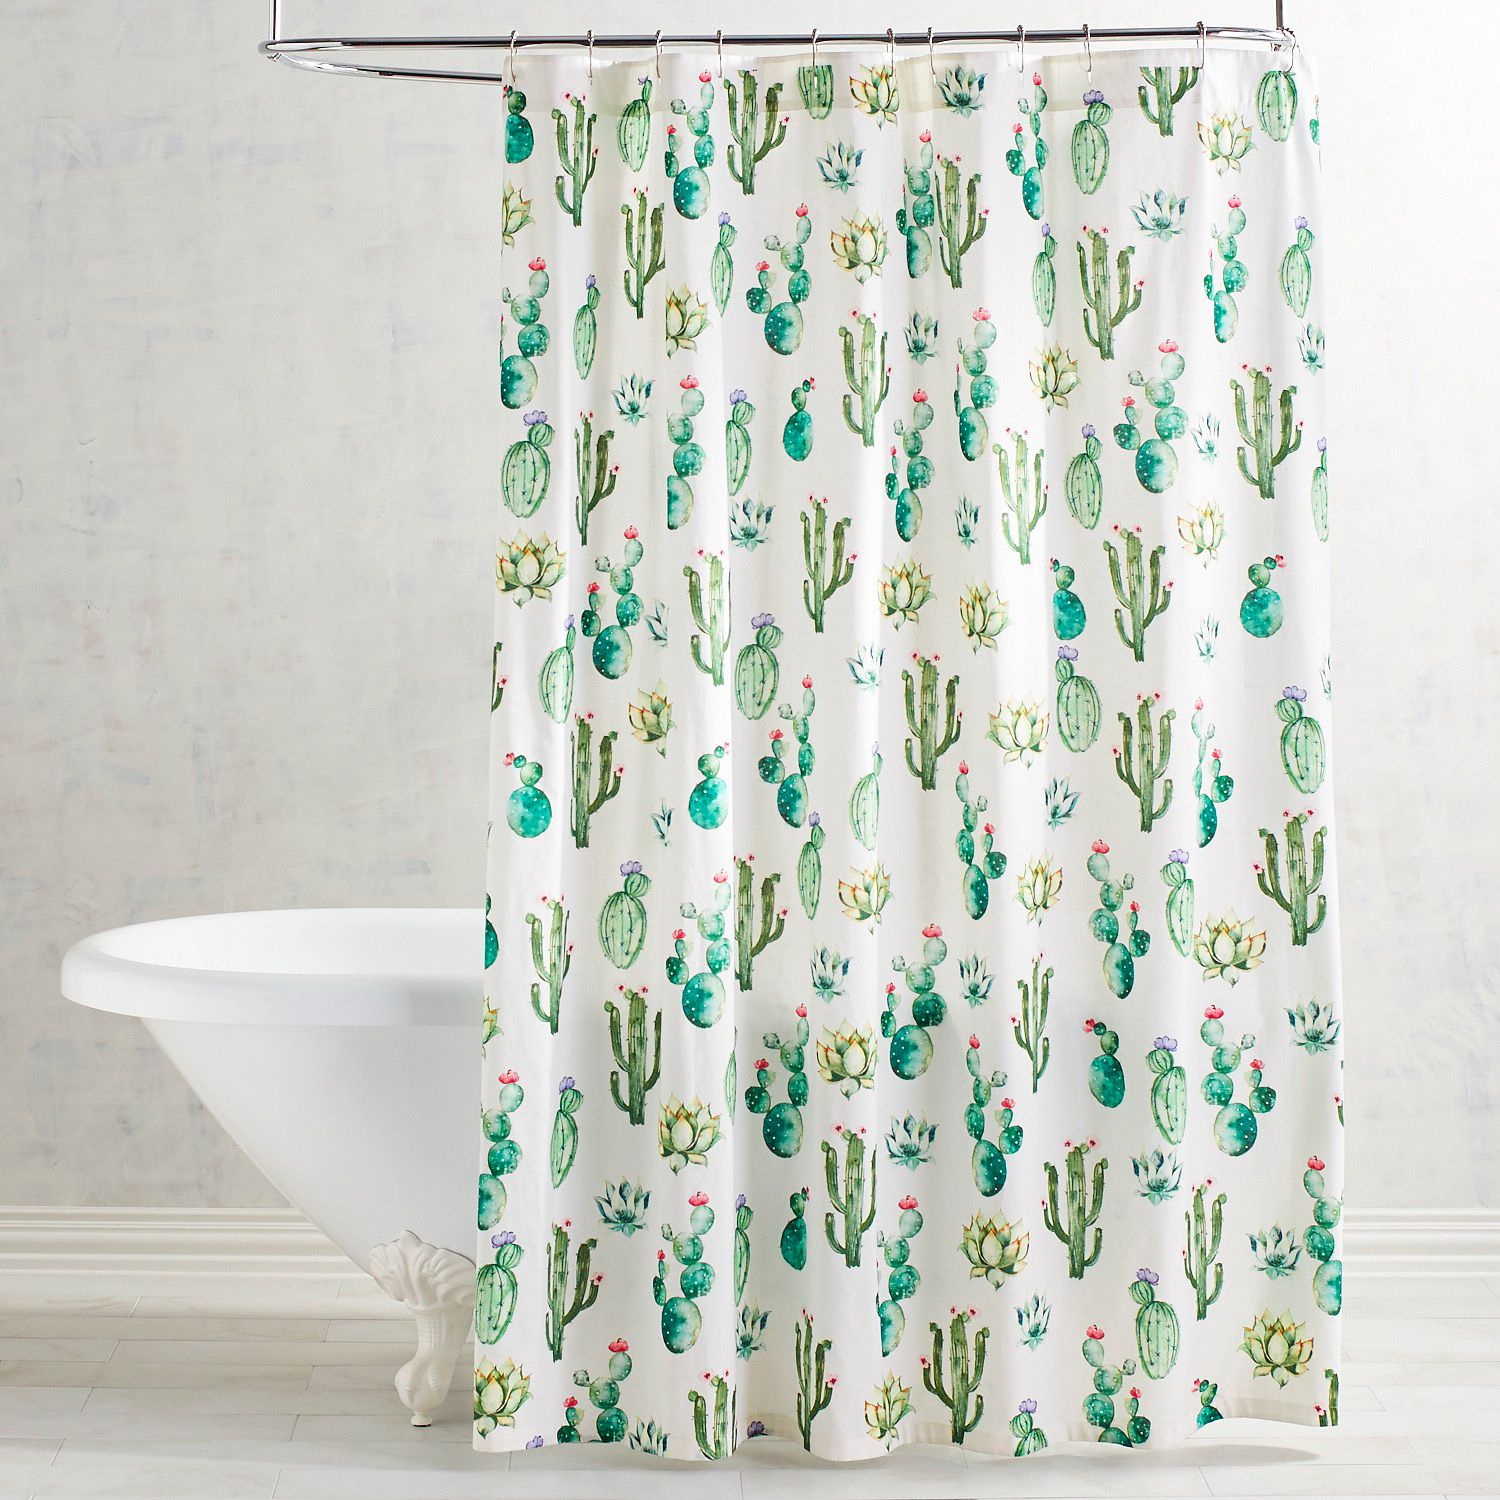 Watercolor Cactus Shower Curtain Cactus Shower Curtain Diy